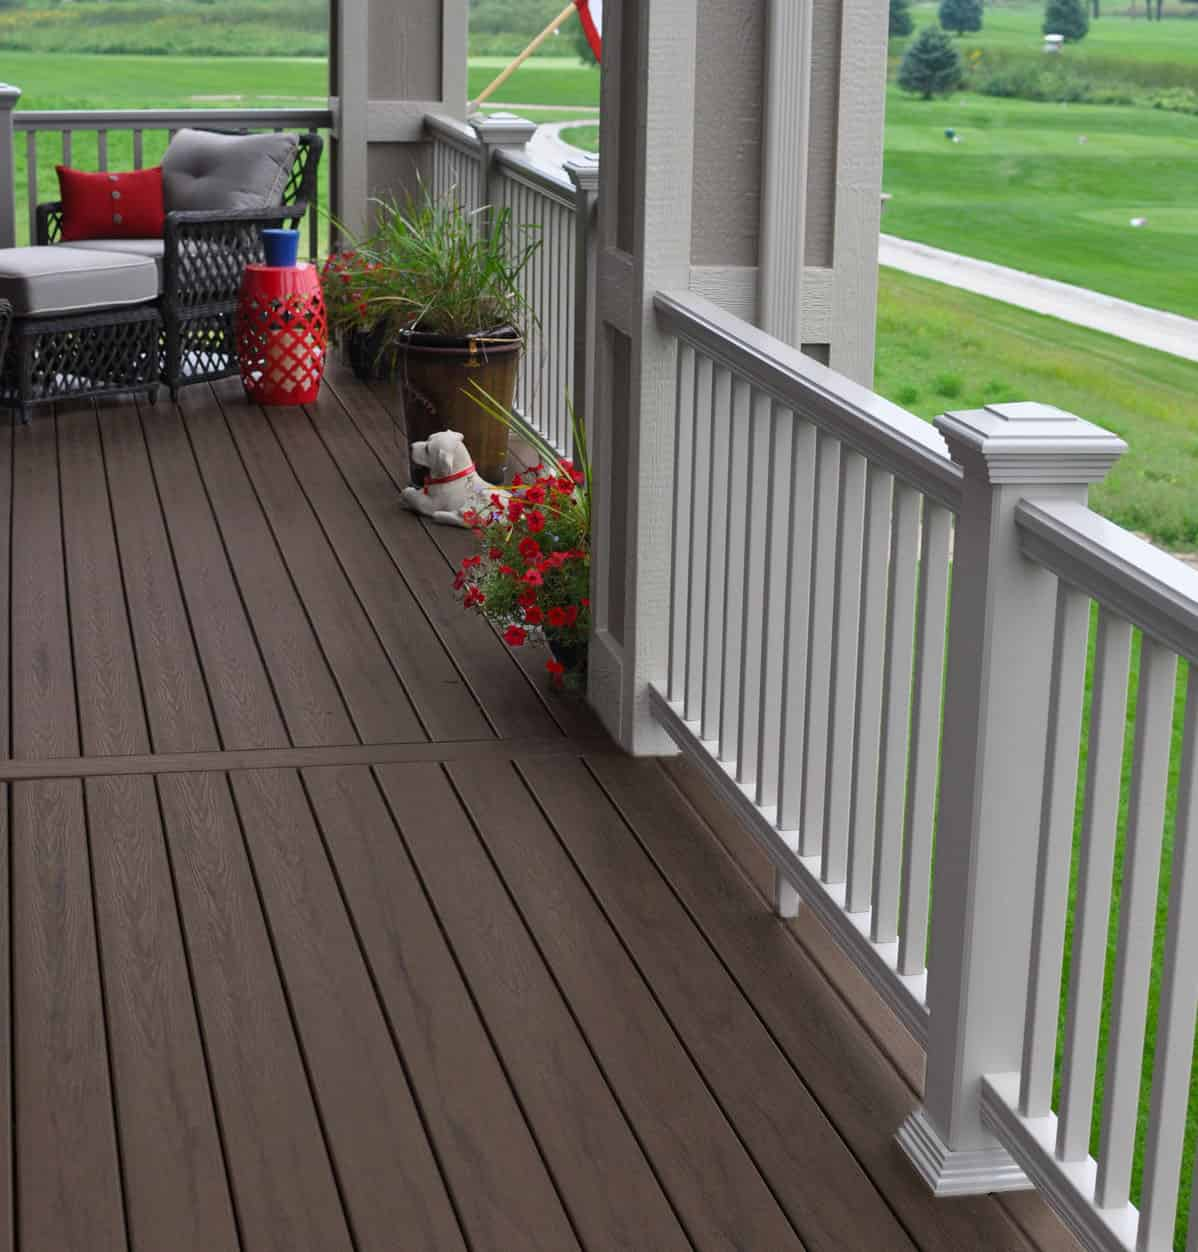 Sprenger Midwest Wholesale Lumber Edge Decking From Sprenger Midwest